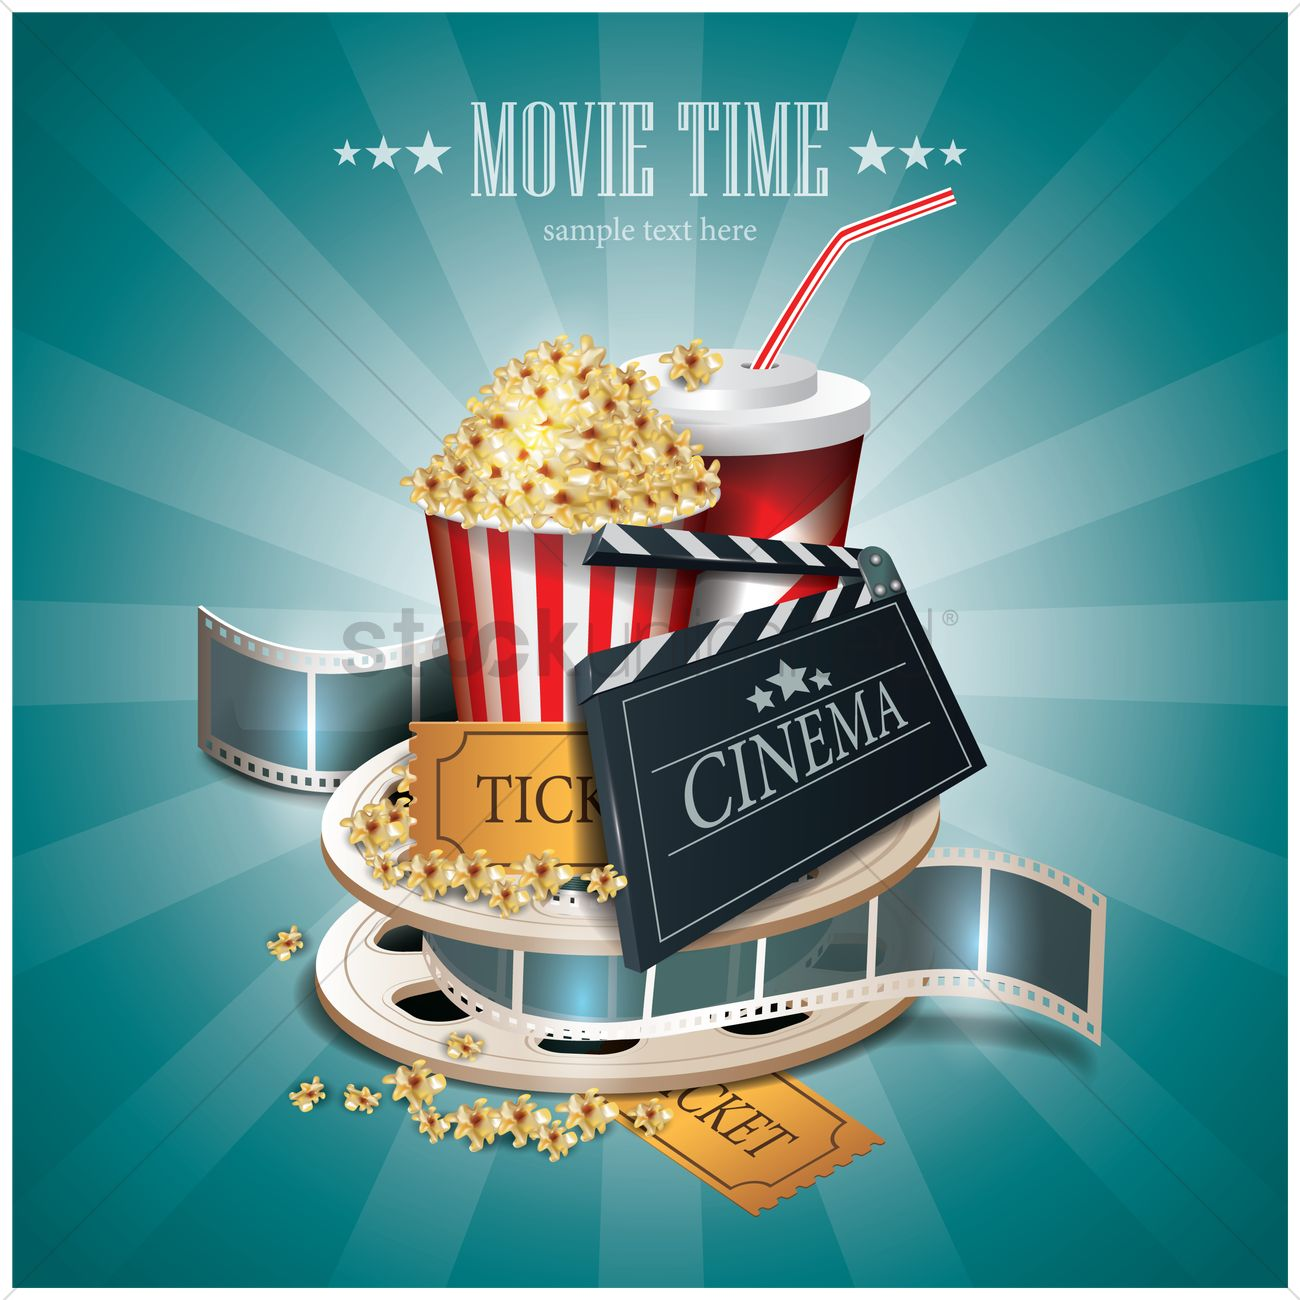 movie time wallpaper vector image 1804982 stockunlimited